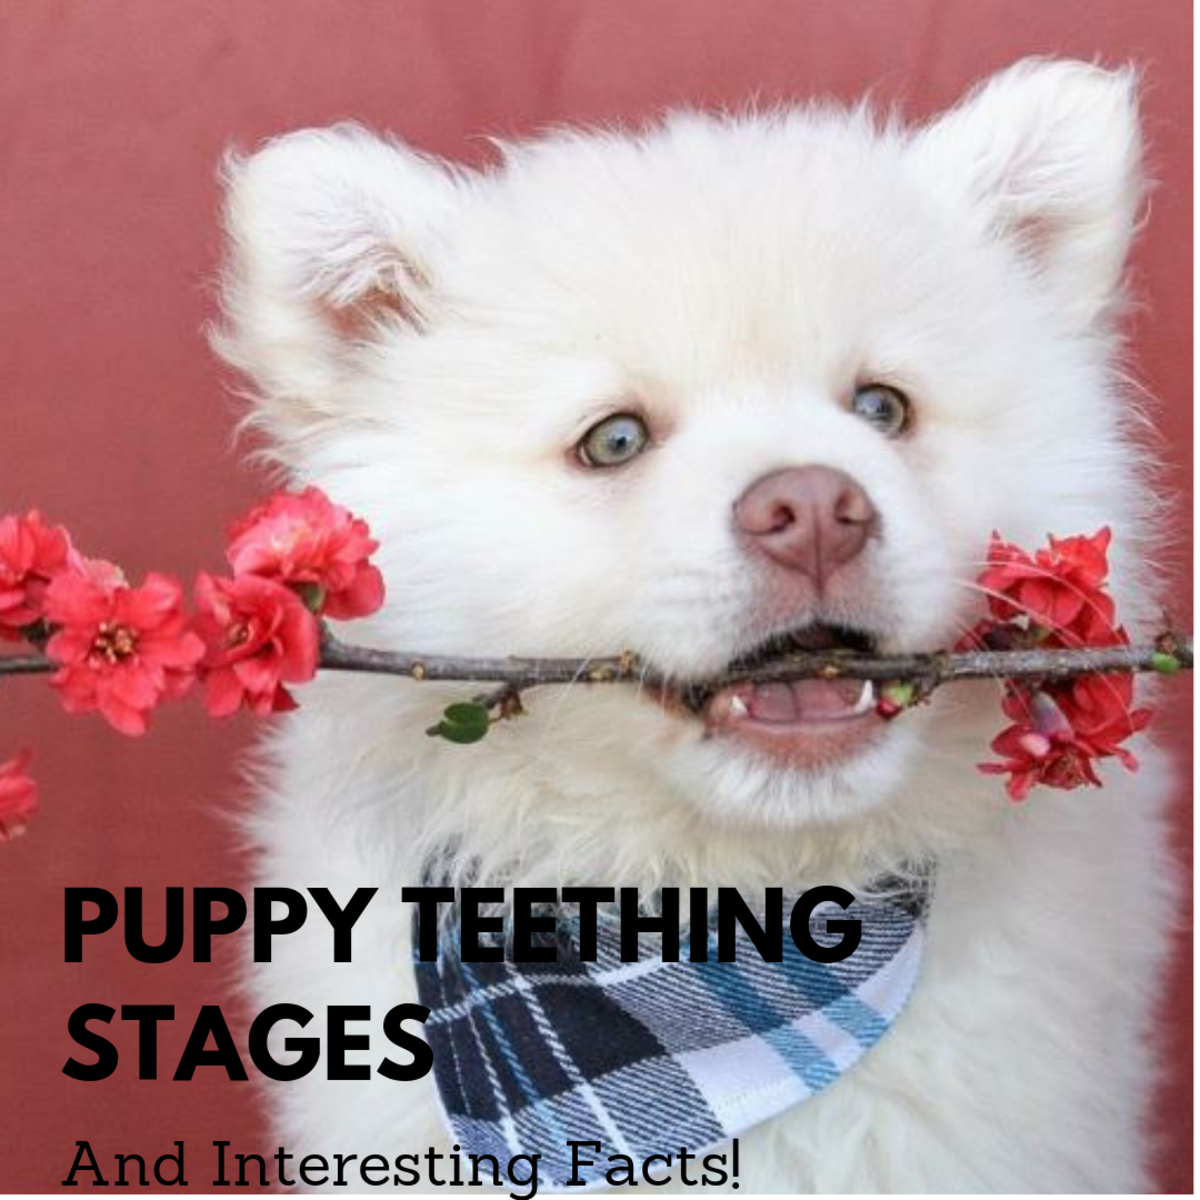 Puppy teeth go through multiple stages.